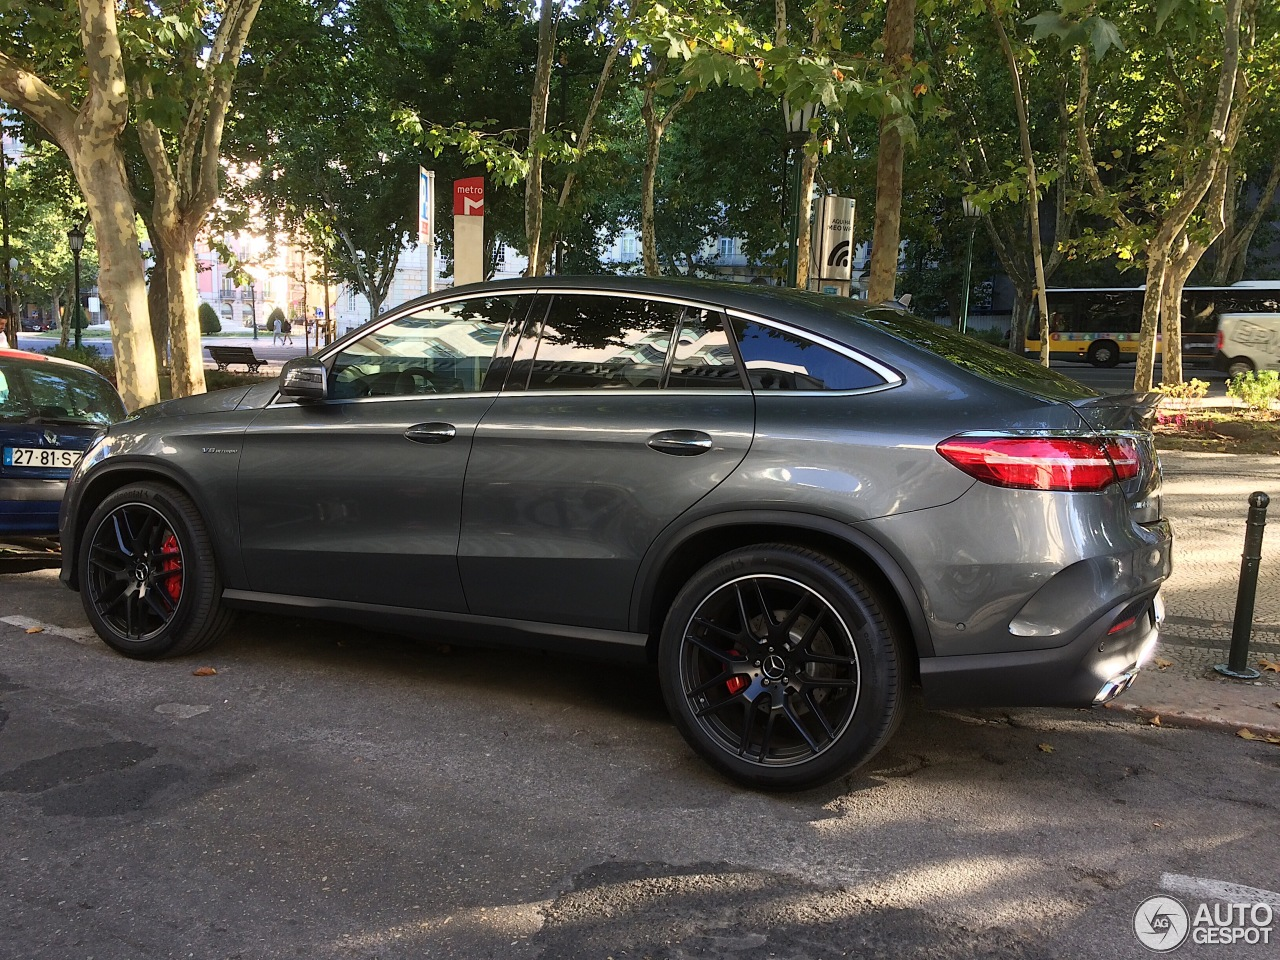 Mercedes amg gle 63 s coup 22 july 2017 autogespot for 2017 mercedes benz amg gle 63